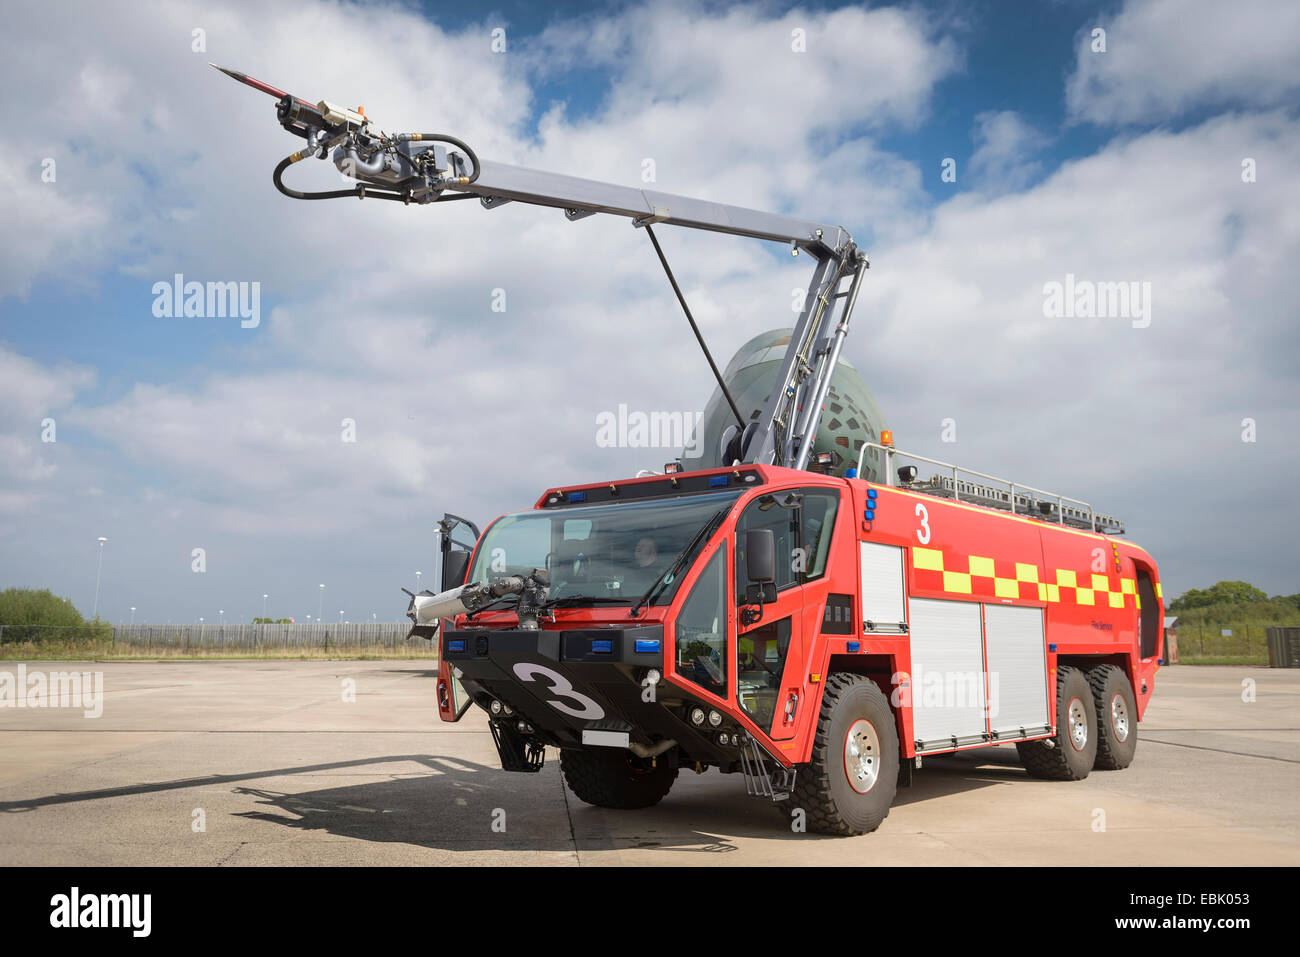 Specialist airport fire engine at training facility - Stock Image